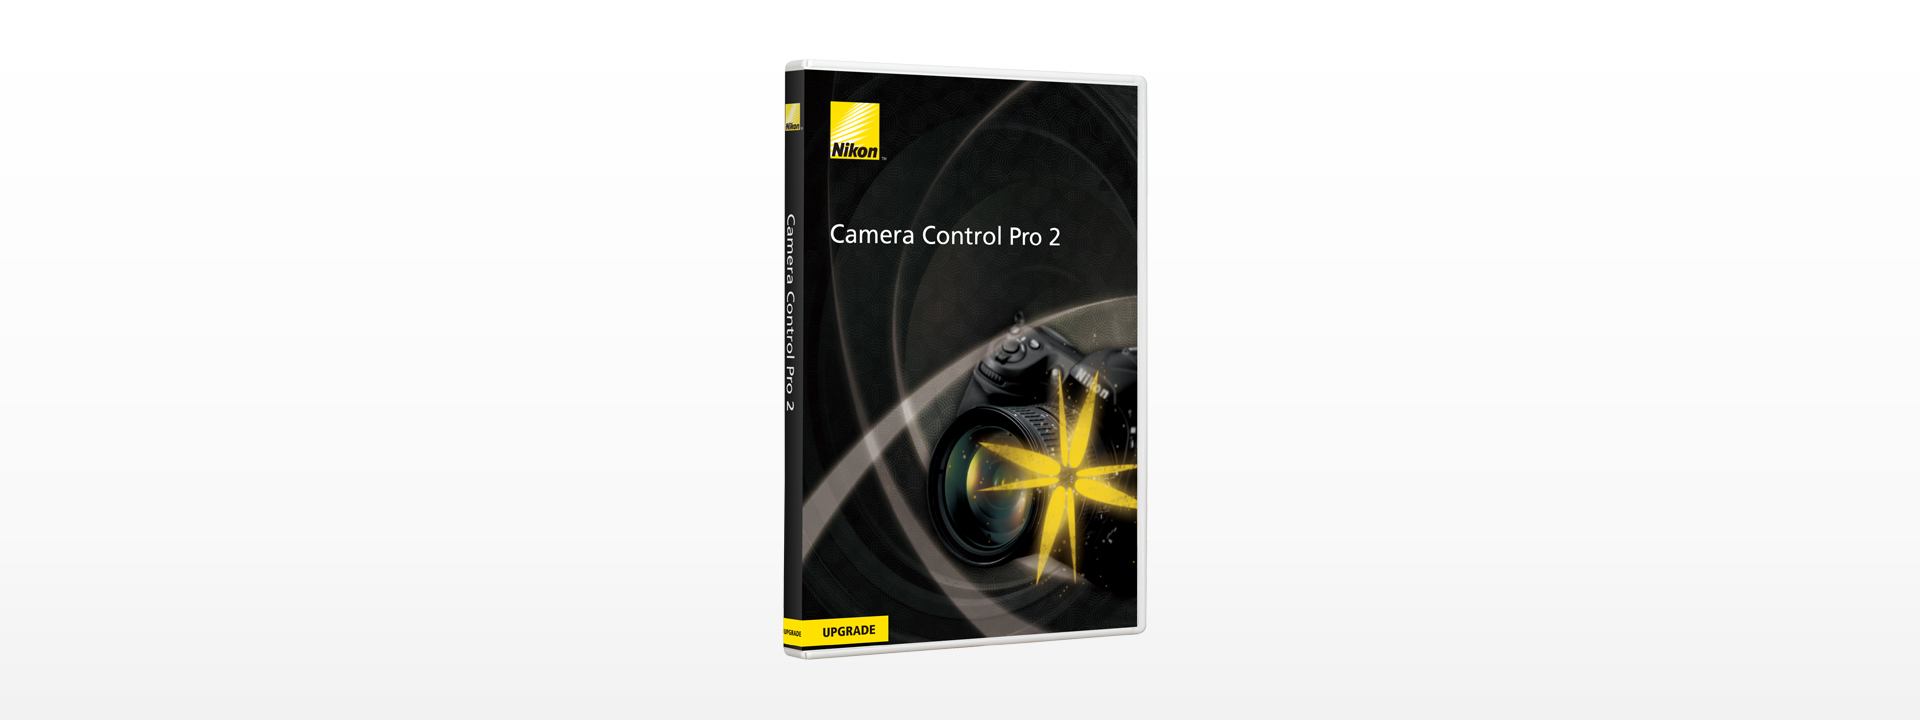 Camera Control Pro 2 Upgrade